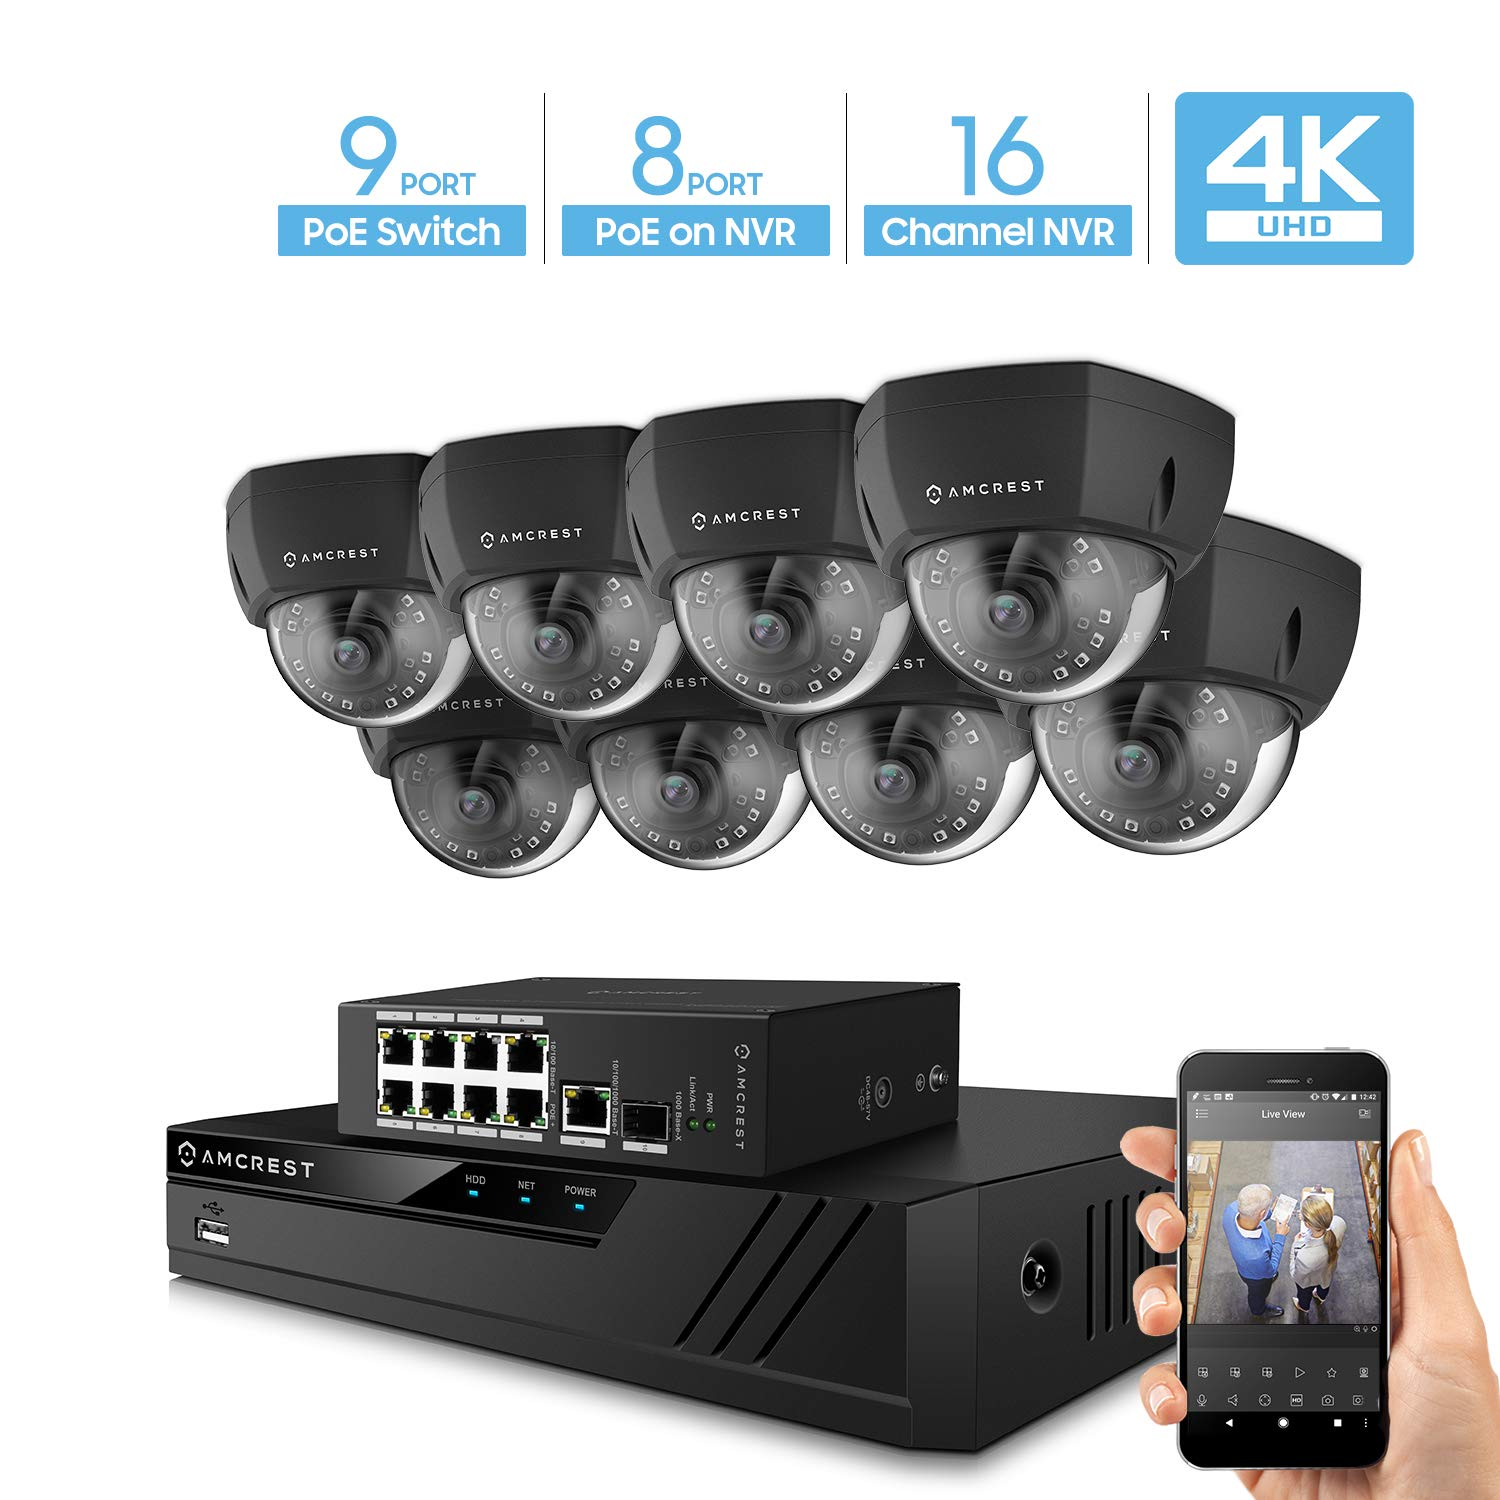 Amcrest 4K UltraHD Video Security Camera System w 4K 16CH PoE NVR, 8 x 4K Dome IP PoE Cameras, 9-Port PoE Switch w Gigabit Uplink, Hard Drive Not Included Supports up to 6TB Black